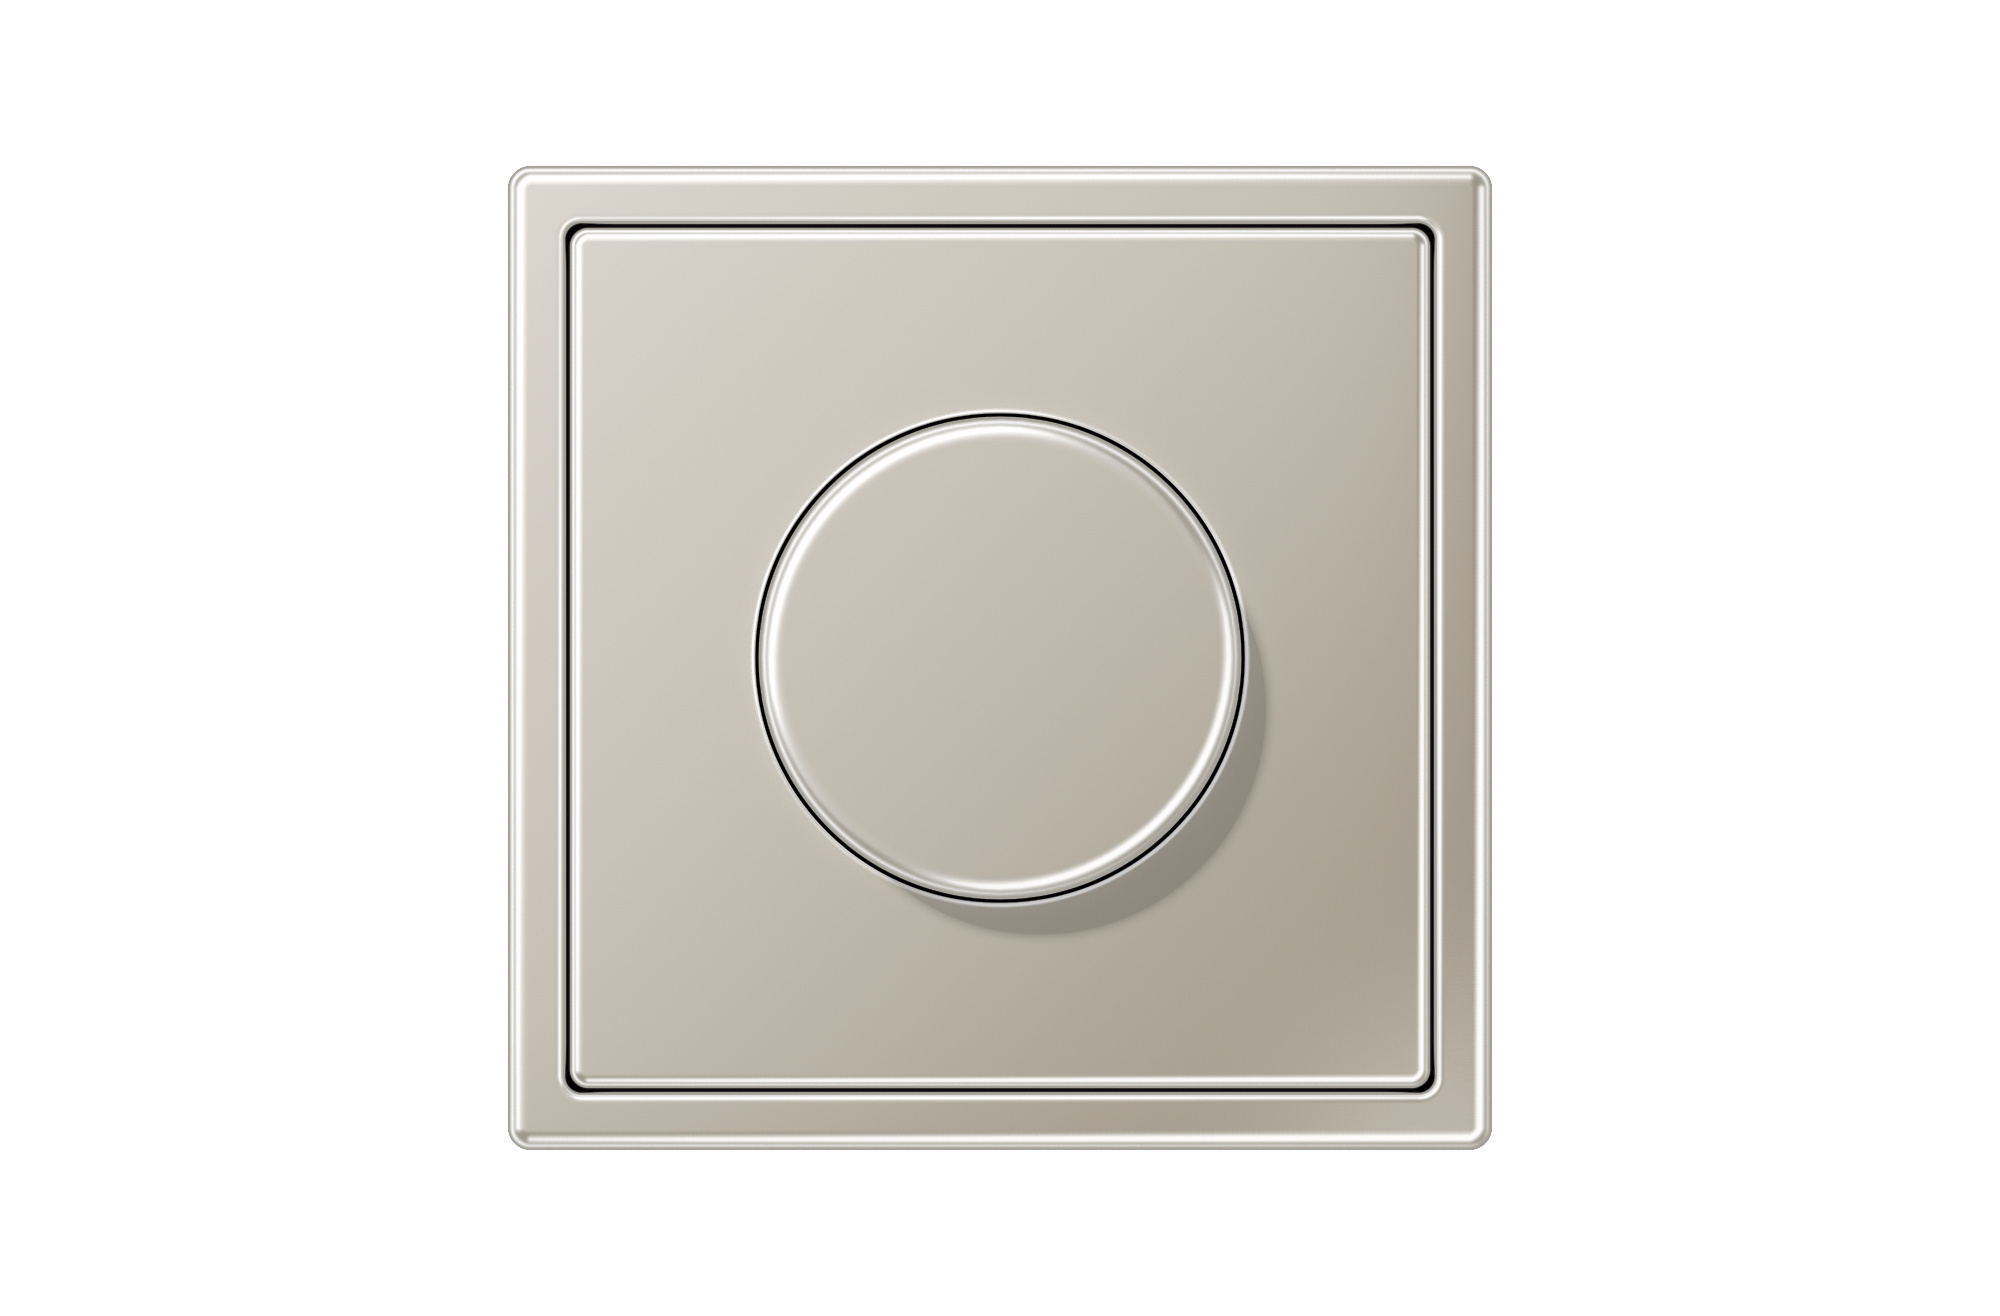 Jung Ls 990 Ls 990 Rotary Dimmer In Stainless Steel By Jung Archello